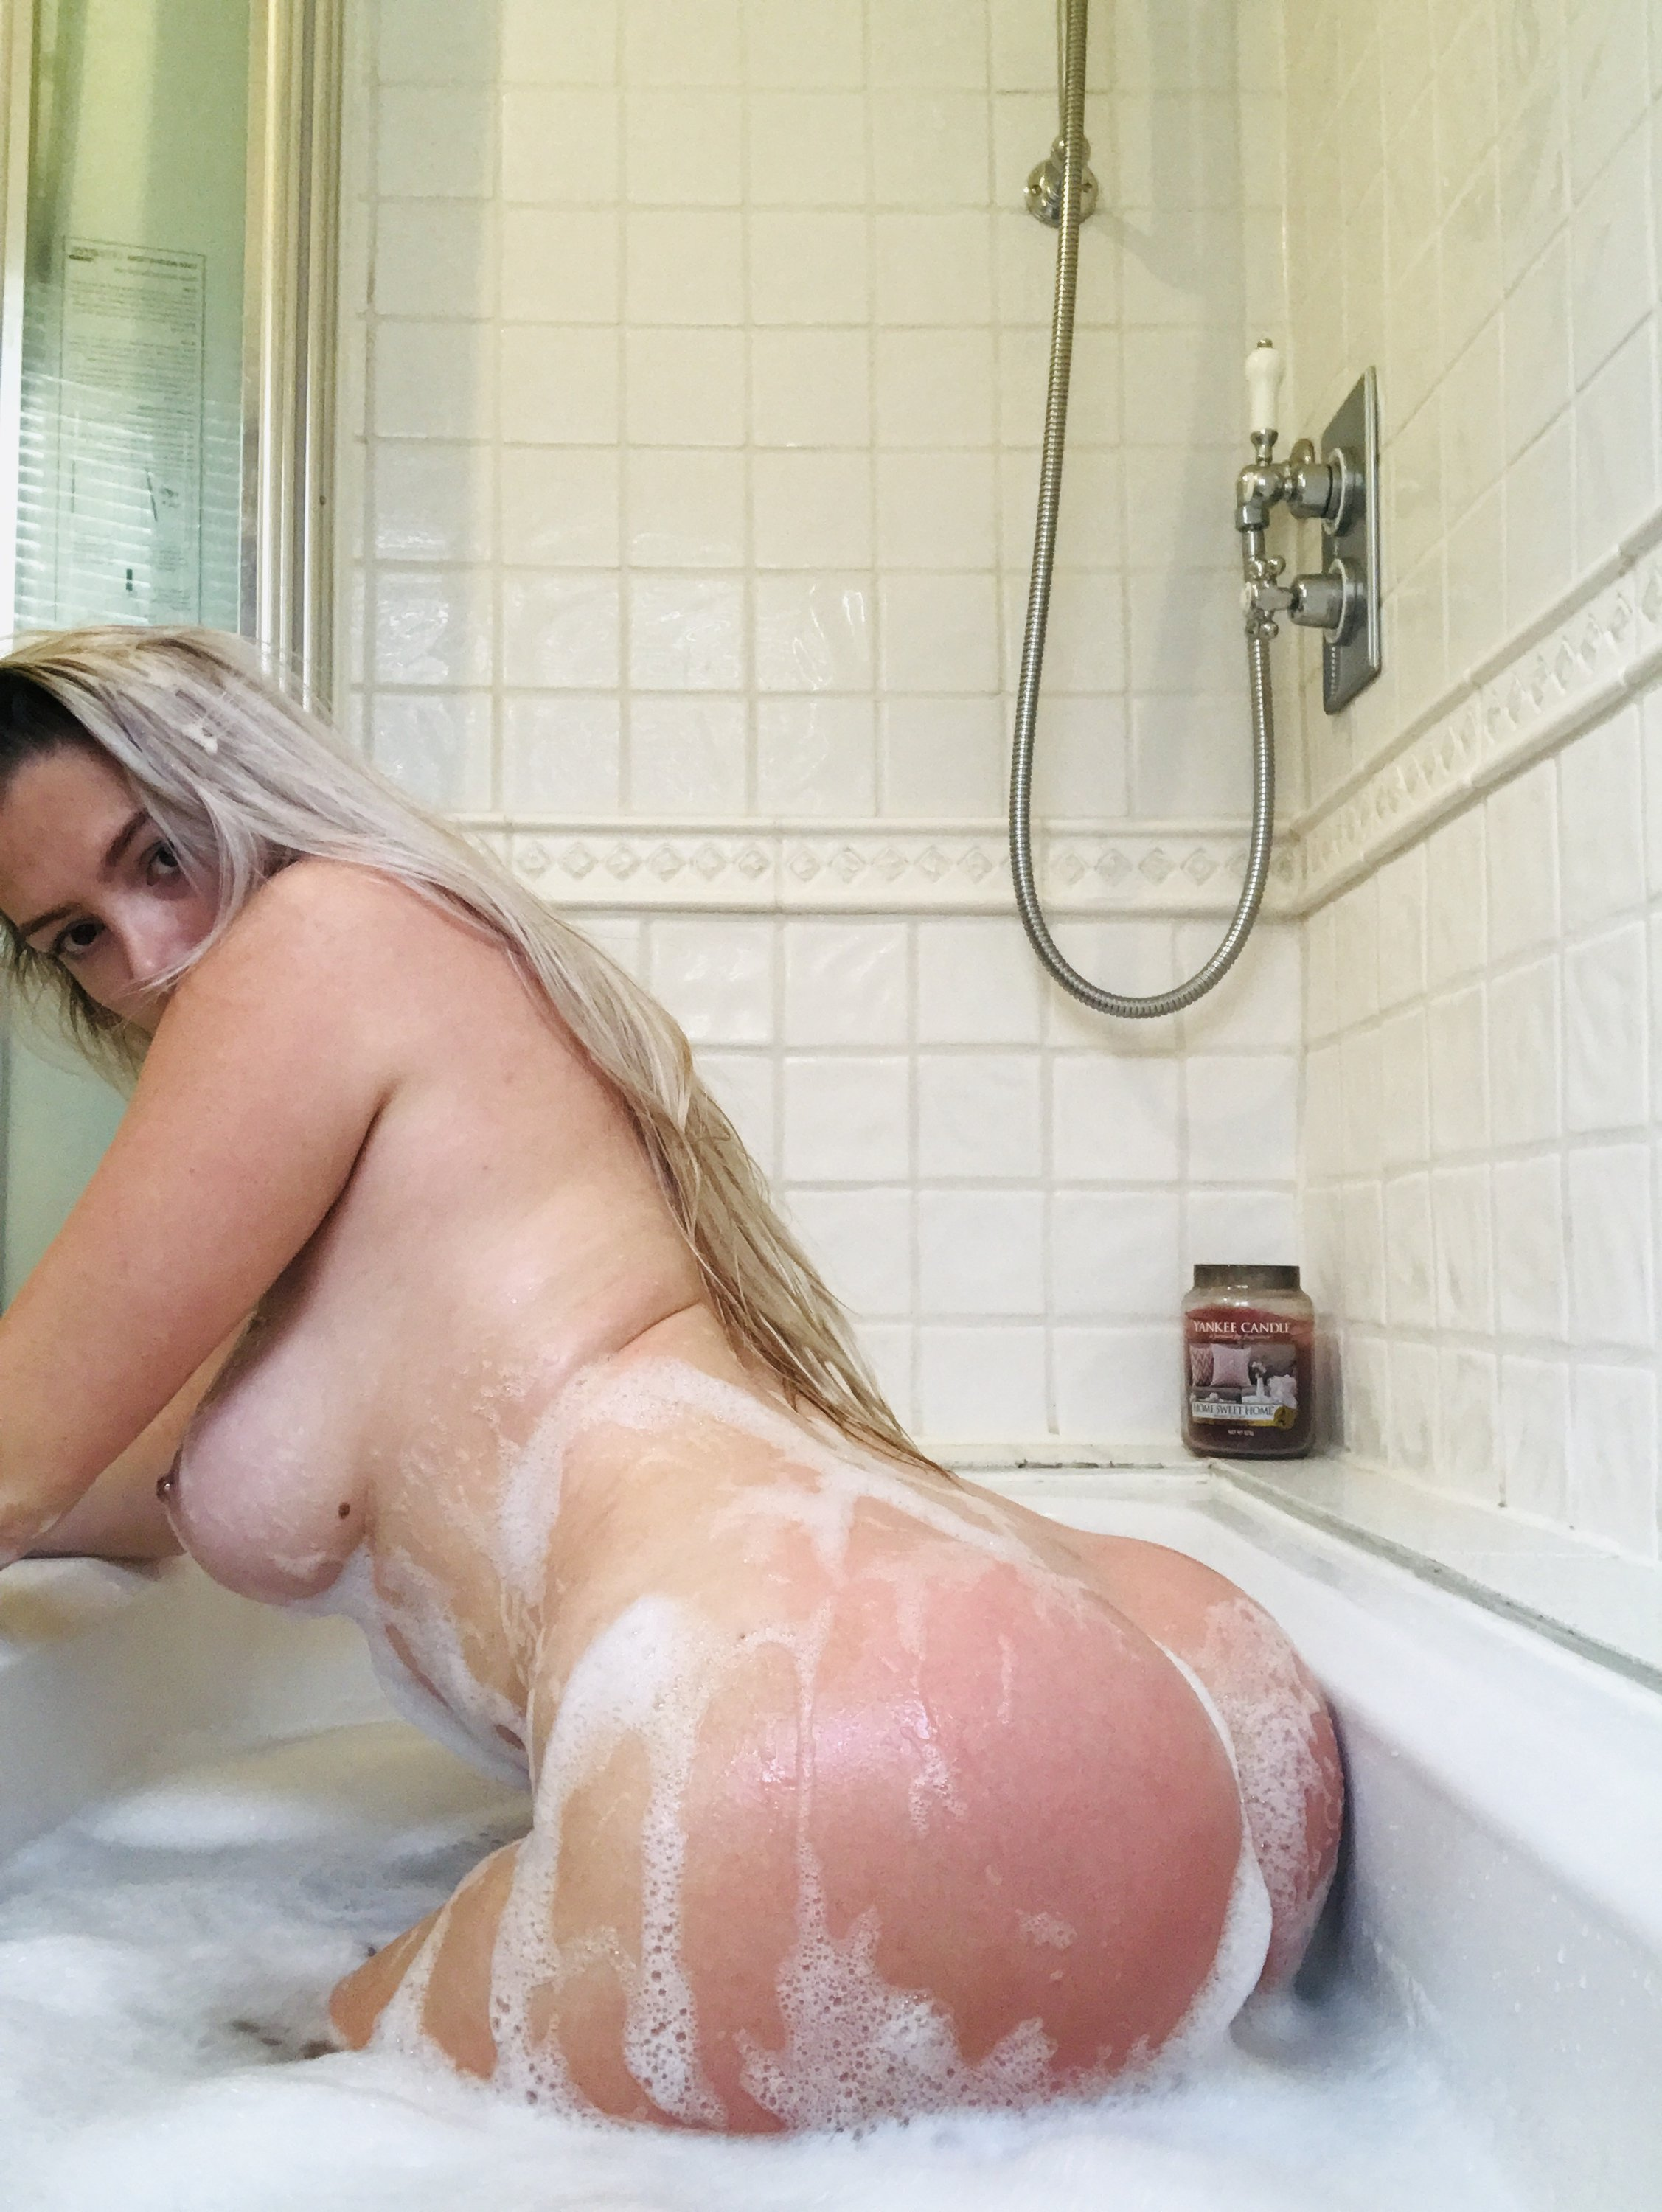 Lucy Nicholson Leaked 0273